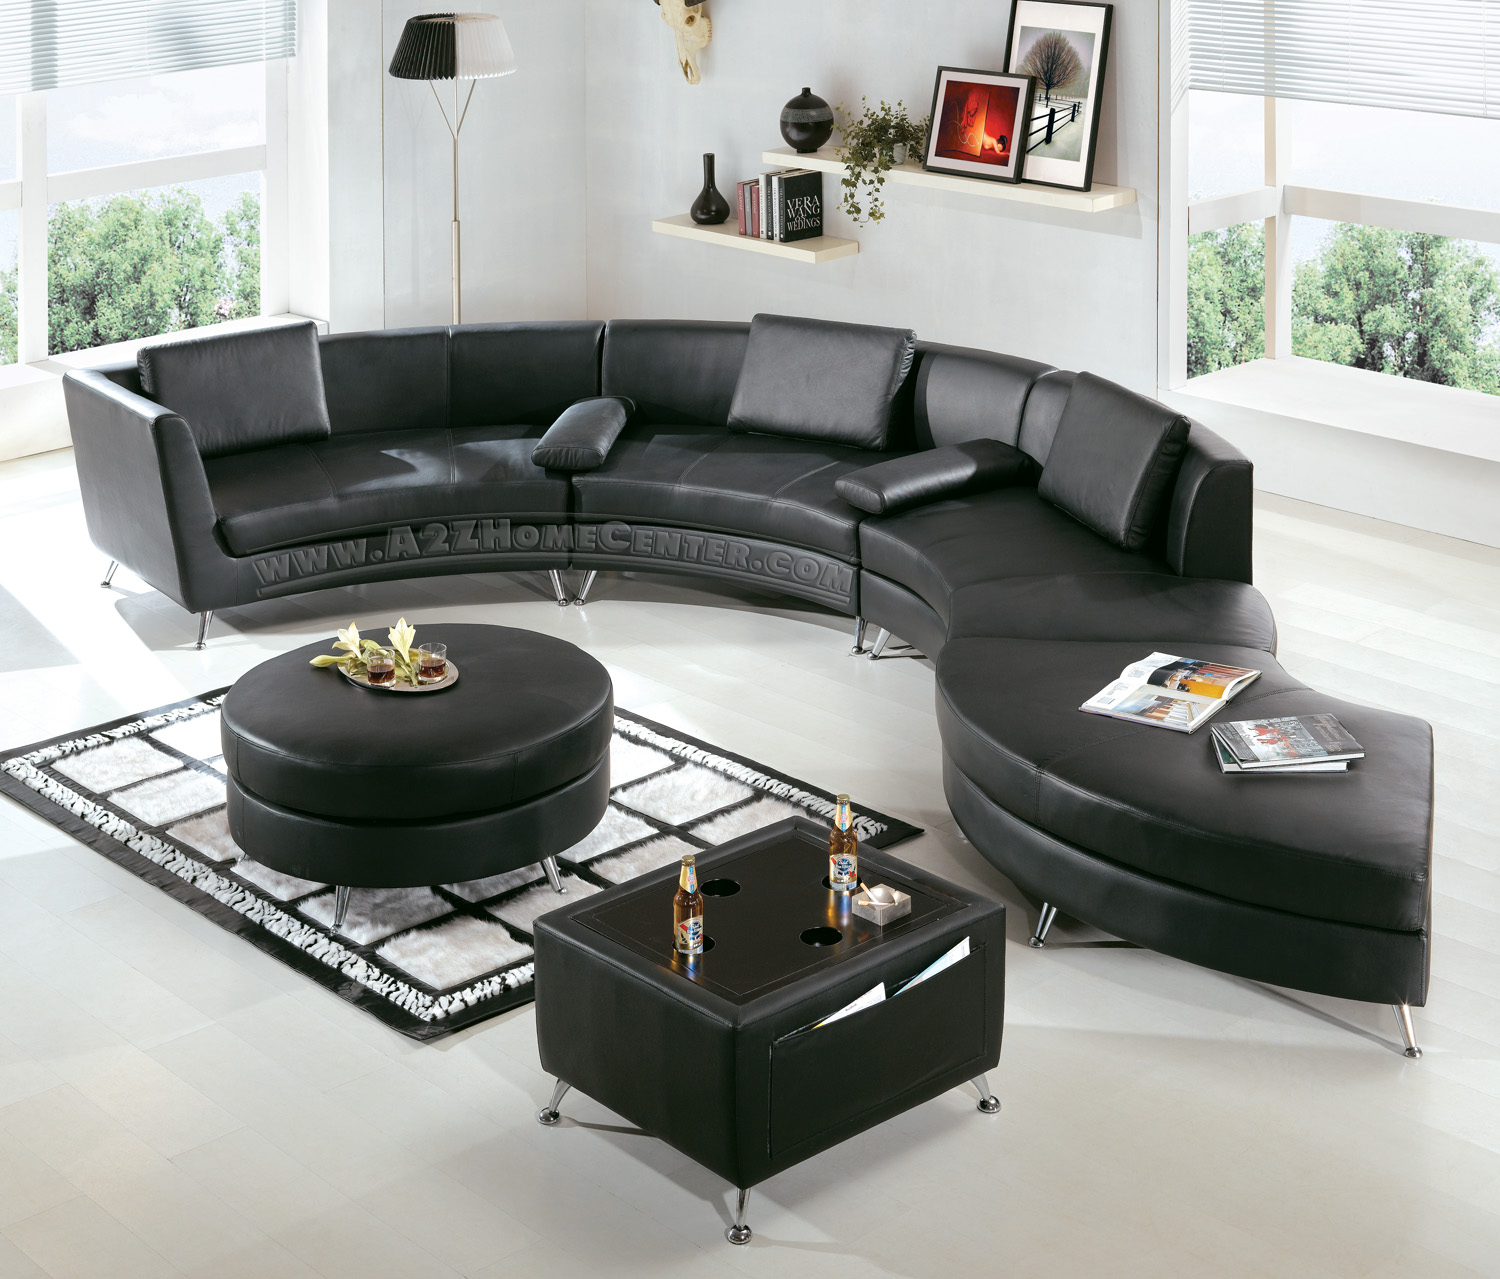 Lounge Designer Furniture: Office Furniture: Modular Office Furniture: A Trend